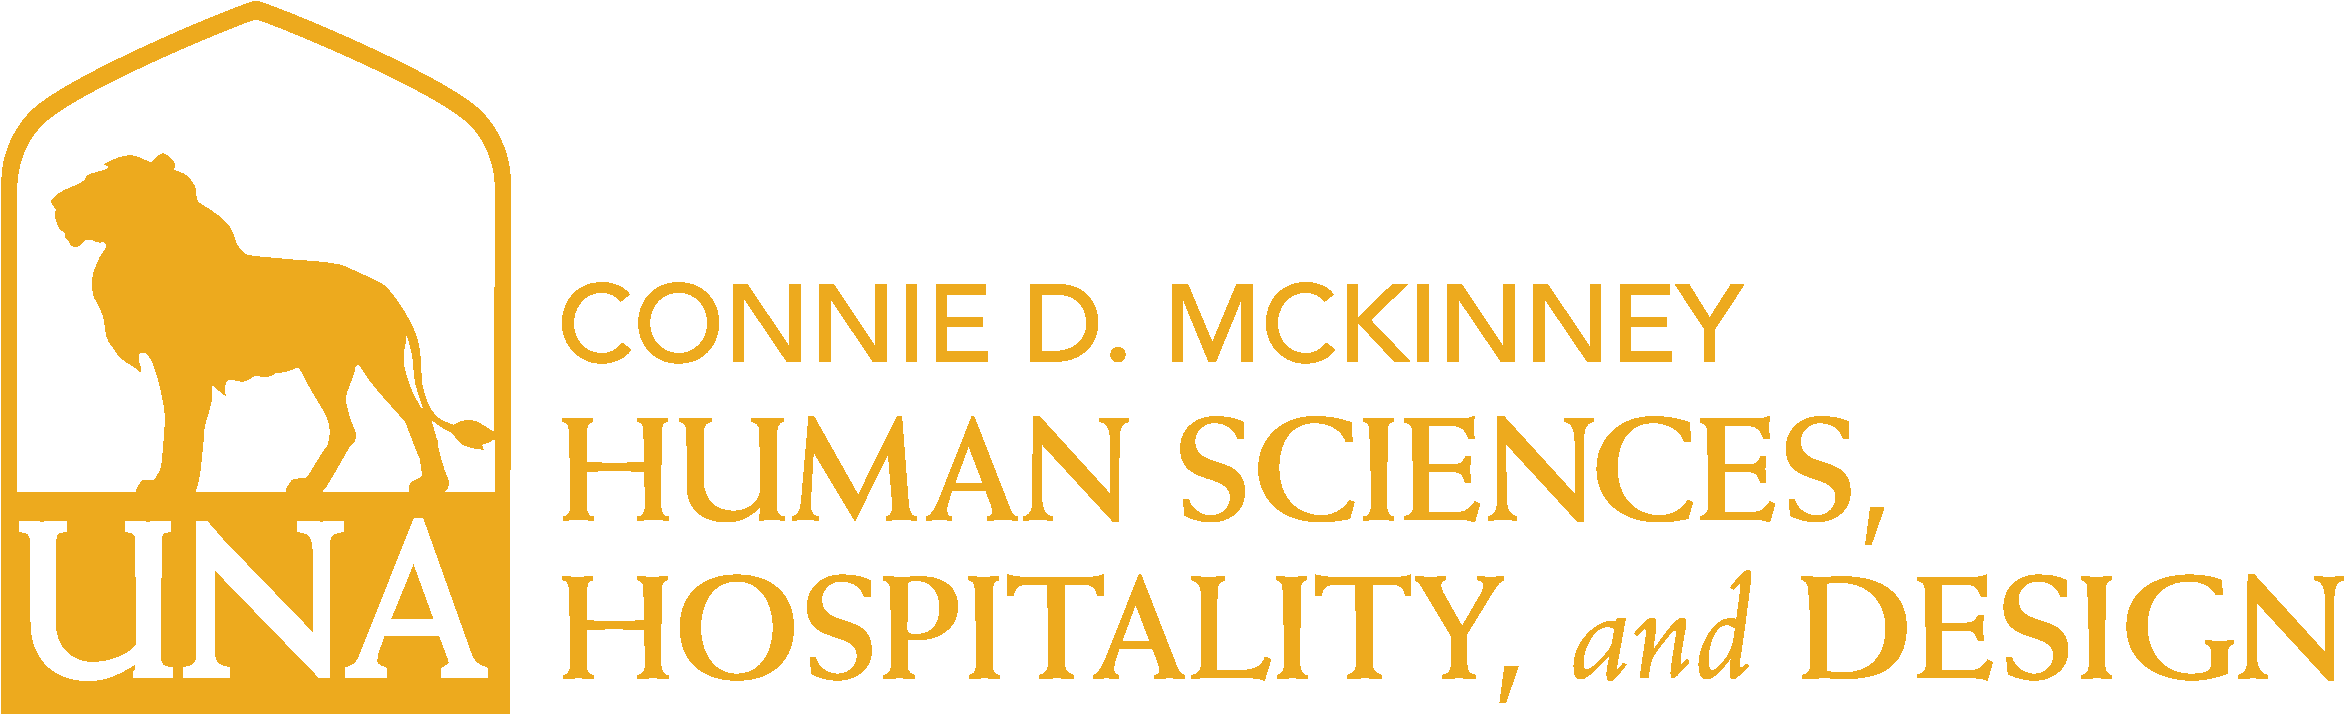 College of Education and Human Services - Human Sciences and Hospitality Design Logo - Gold - Version 3